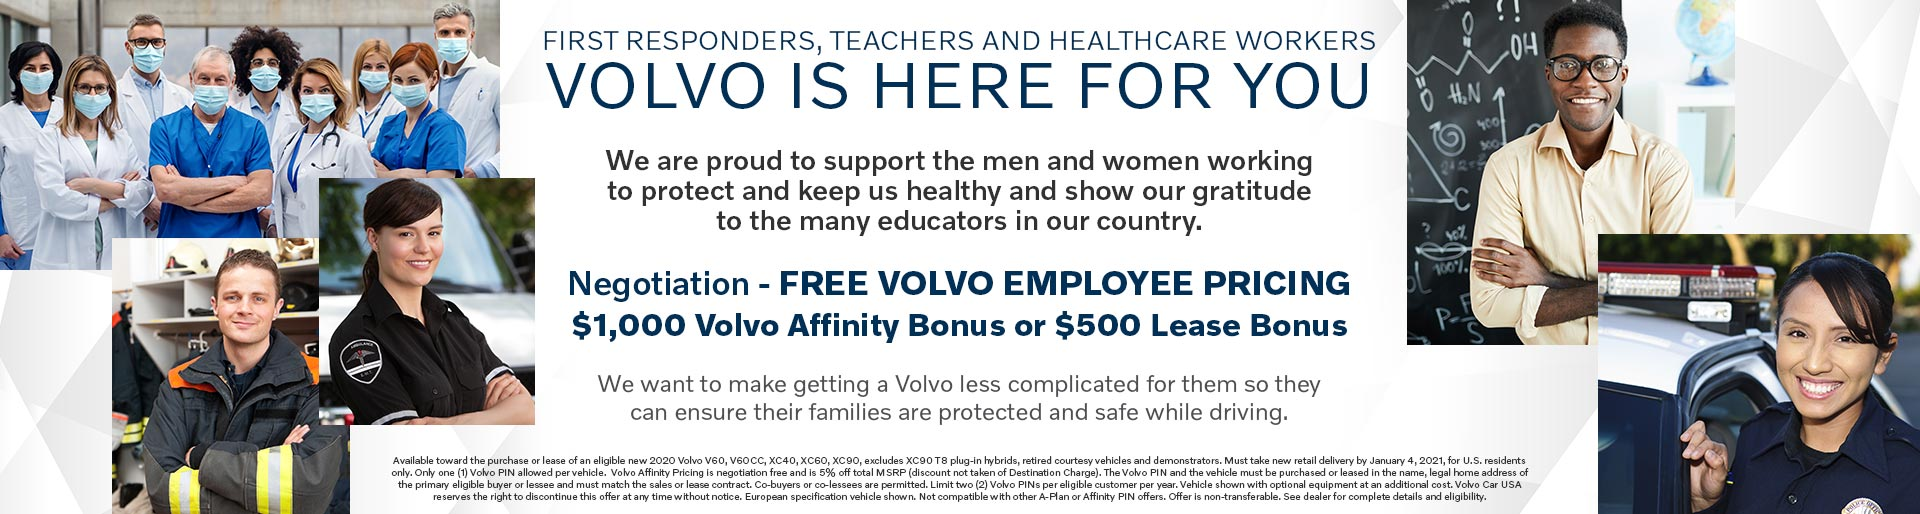 Volvo is here for you.